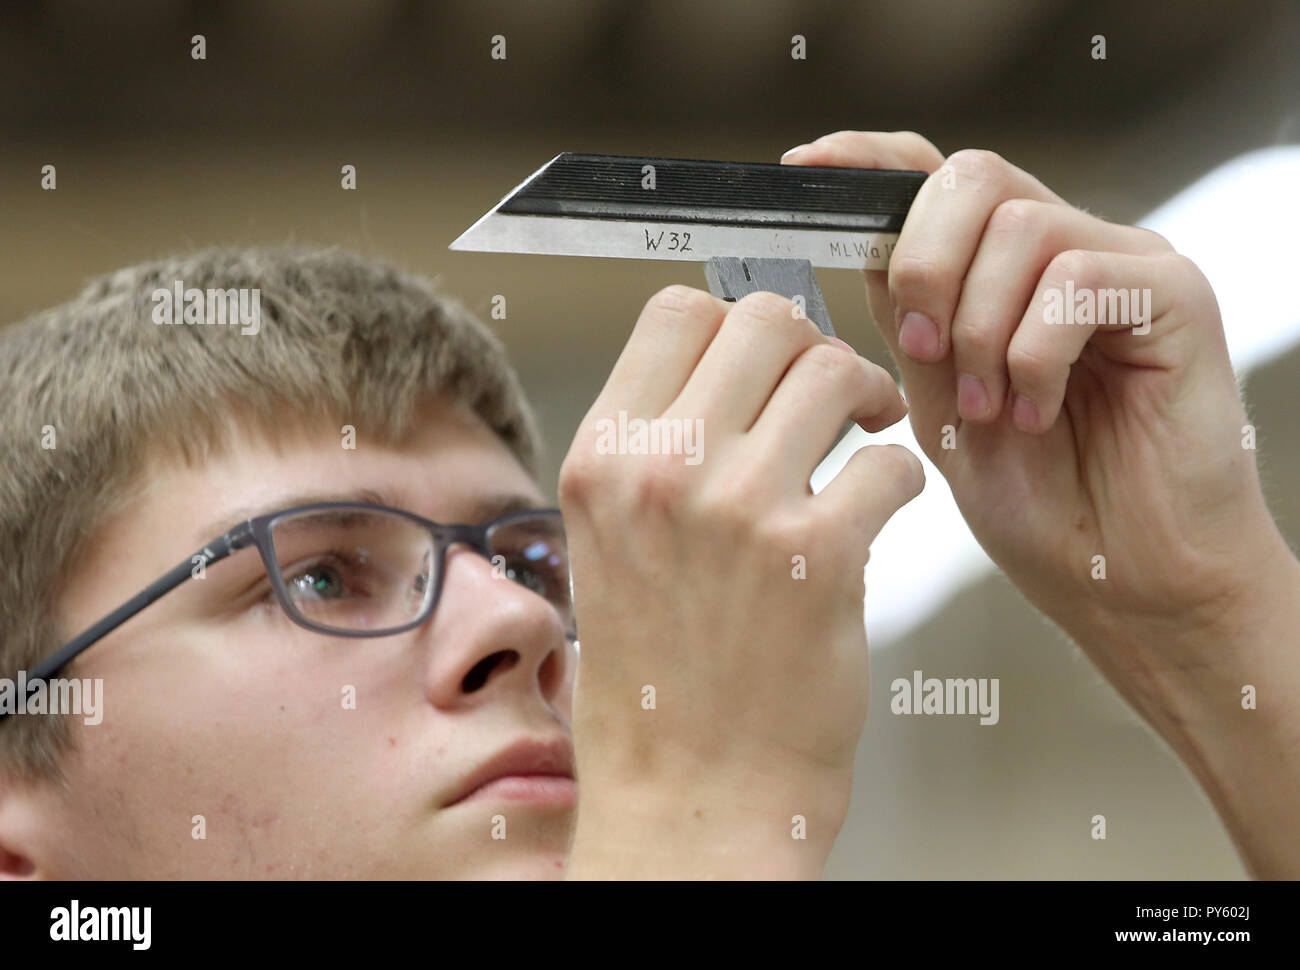 Berlin, Germany. 26th Oct, 2018. At the beginning of a press conference on the 'Training: A Question of Adjustment' campaign, a trainee checks the accuracy of a workpiece at the Berliner Wasserwerke training facility. The campaign aims to recruit more trainees with a migration history. Credit: Wolfgang Kumm/dpa/Alamy Live News - Stock Image